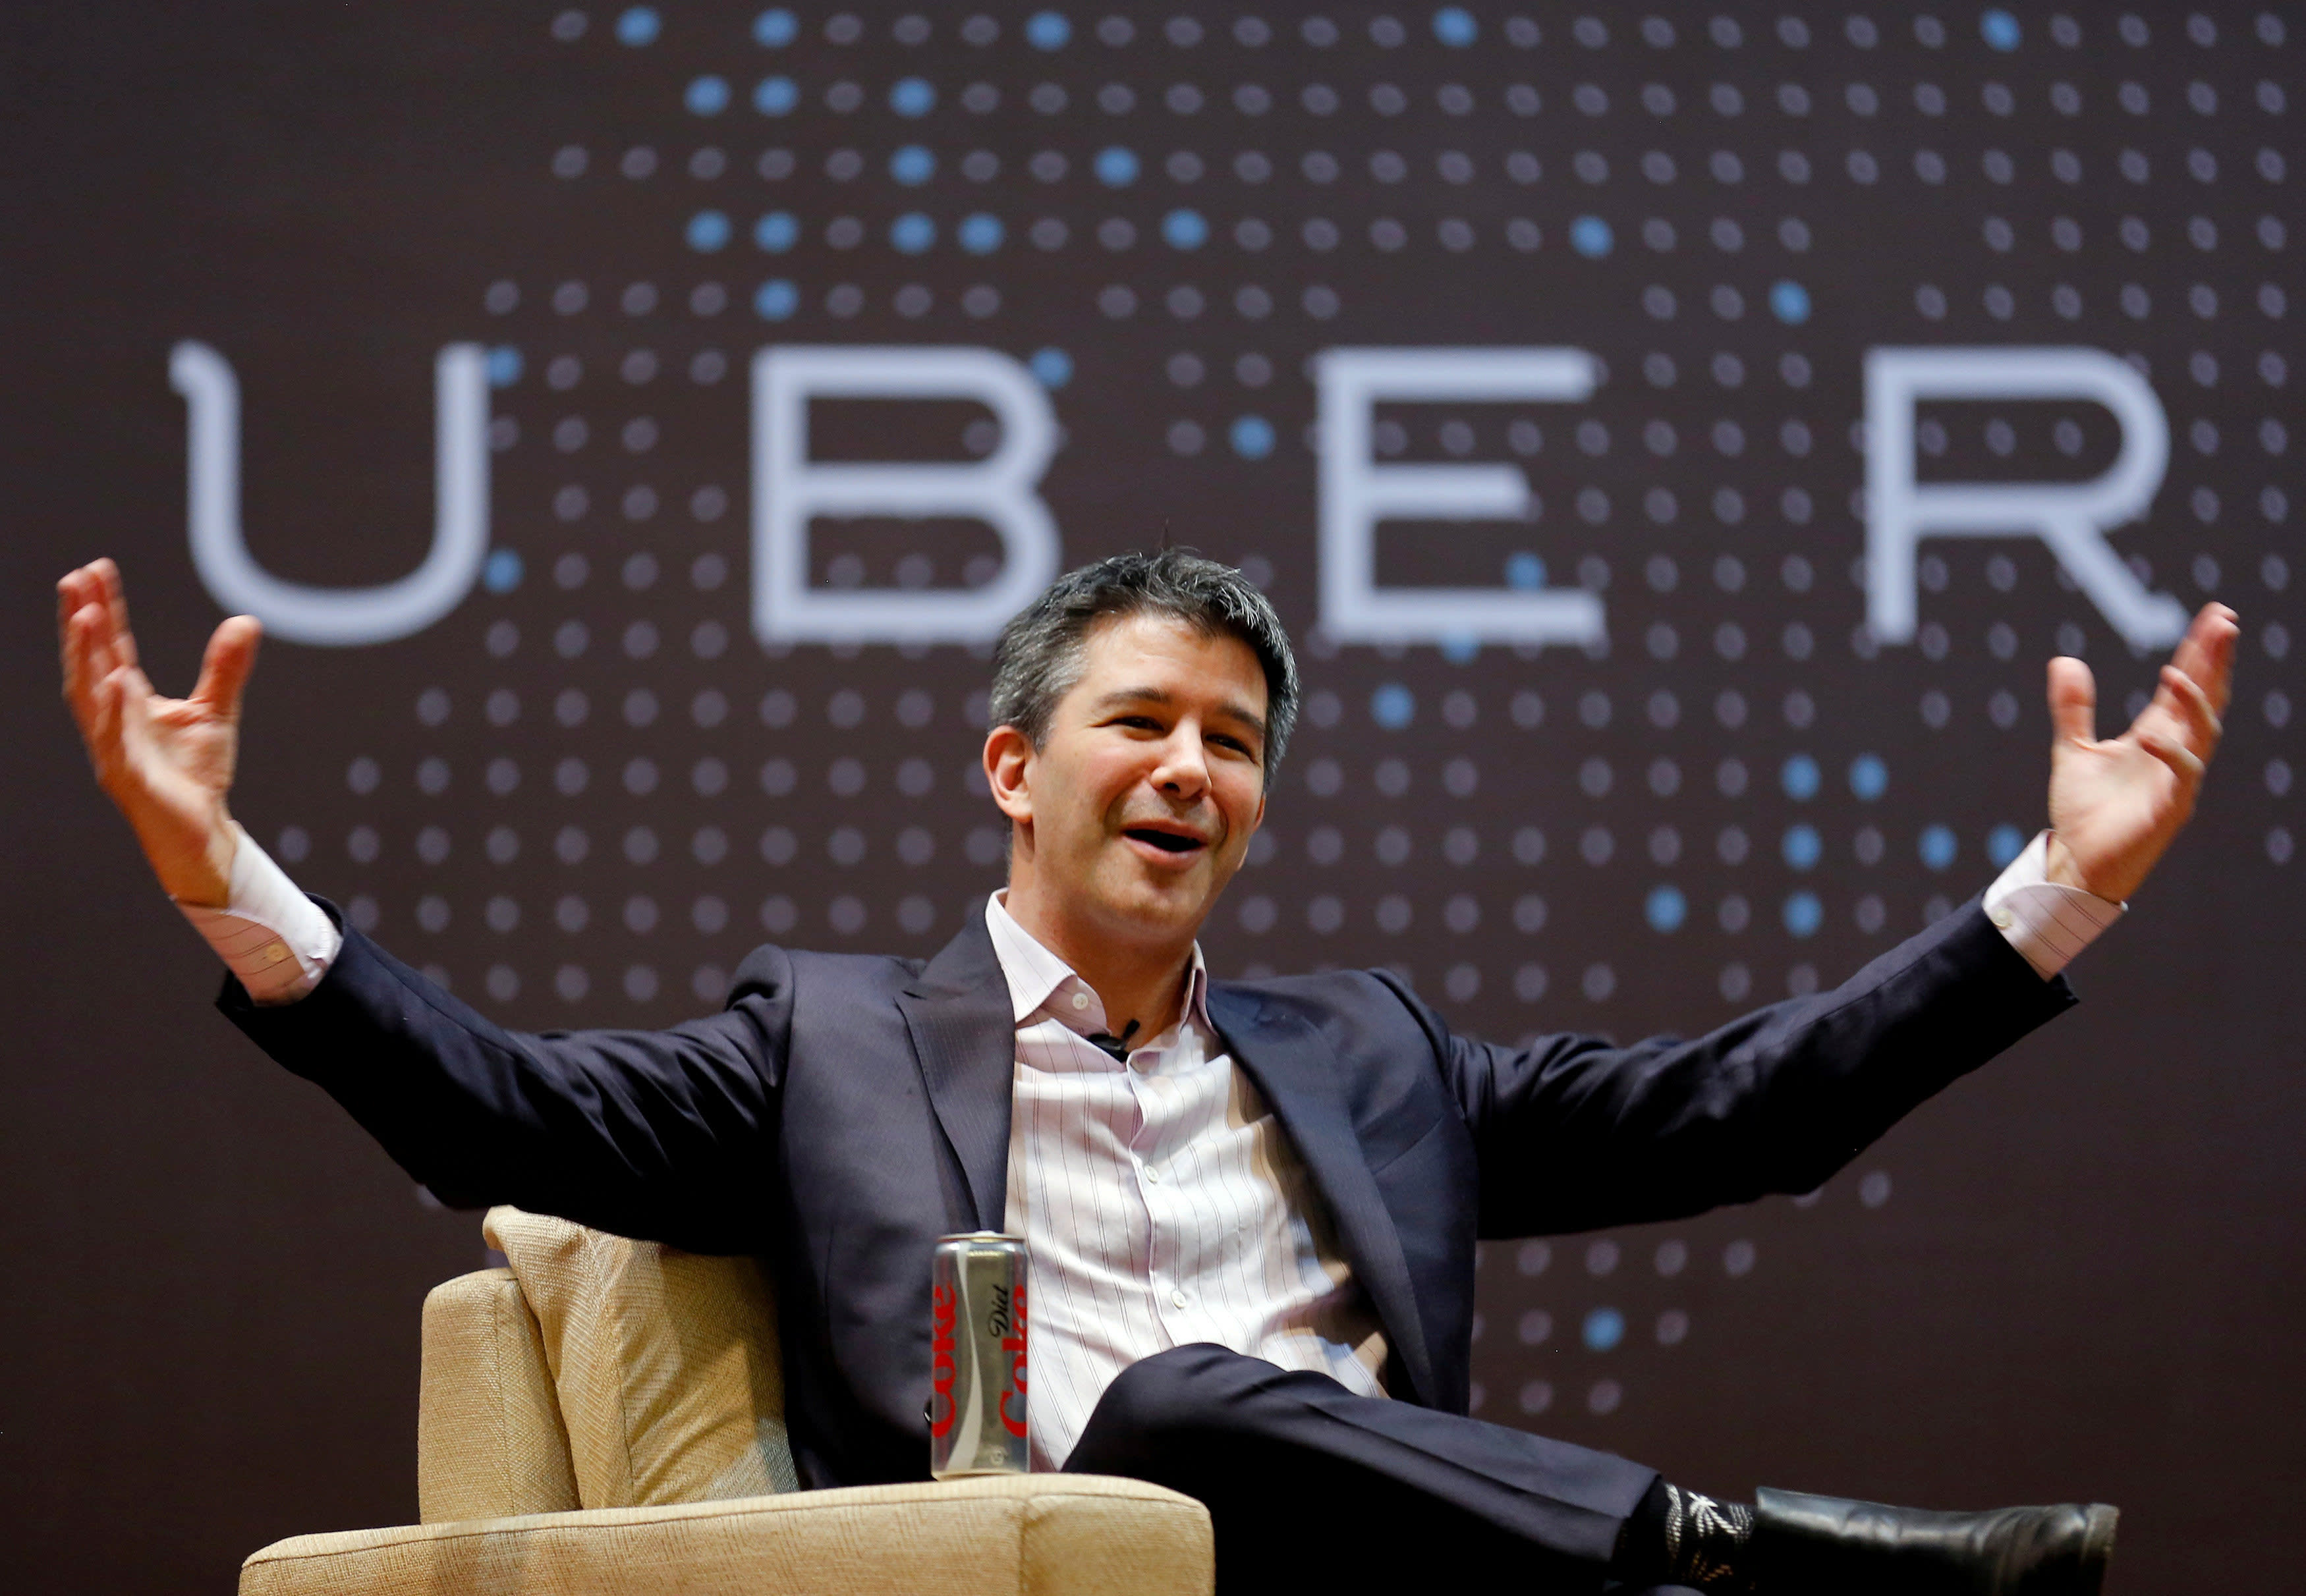 Image result for On,the,rise,of,unproductive,entrepreneurs,like,Travis,Kalanick